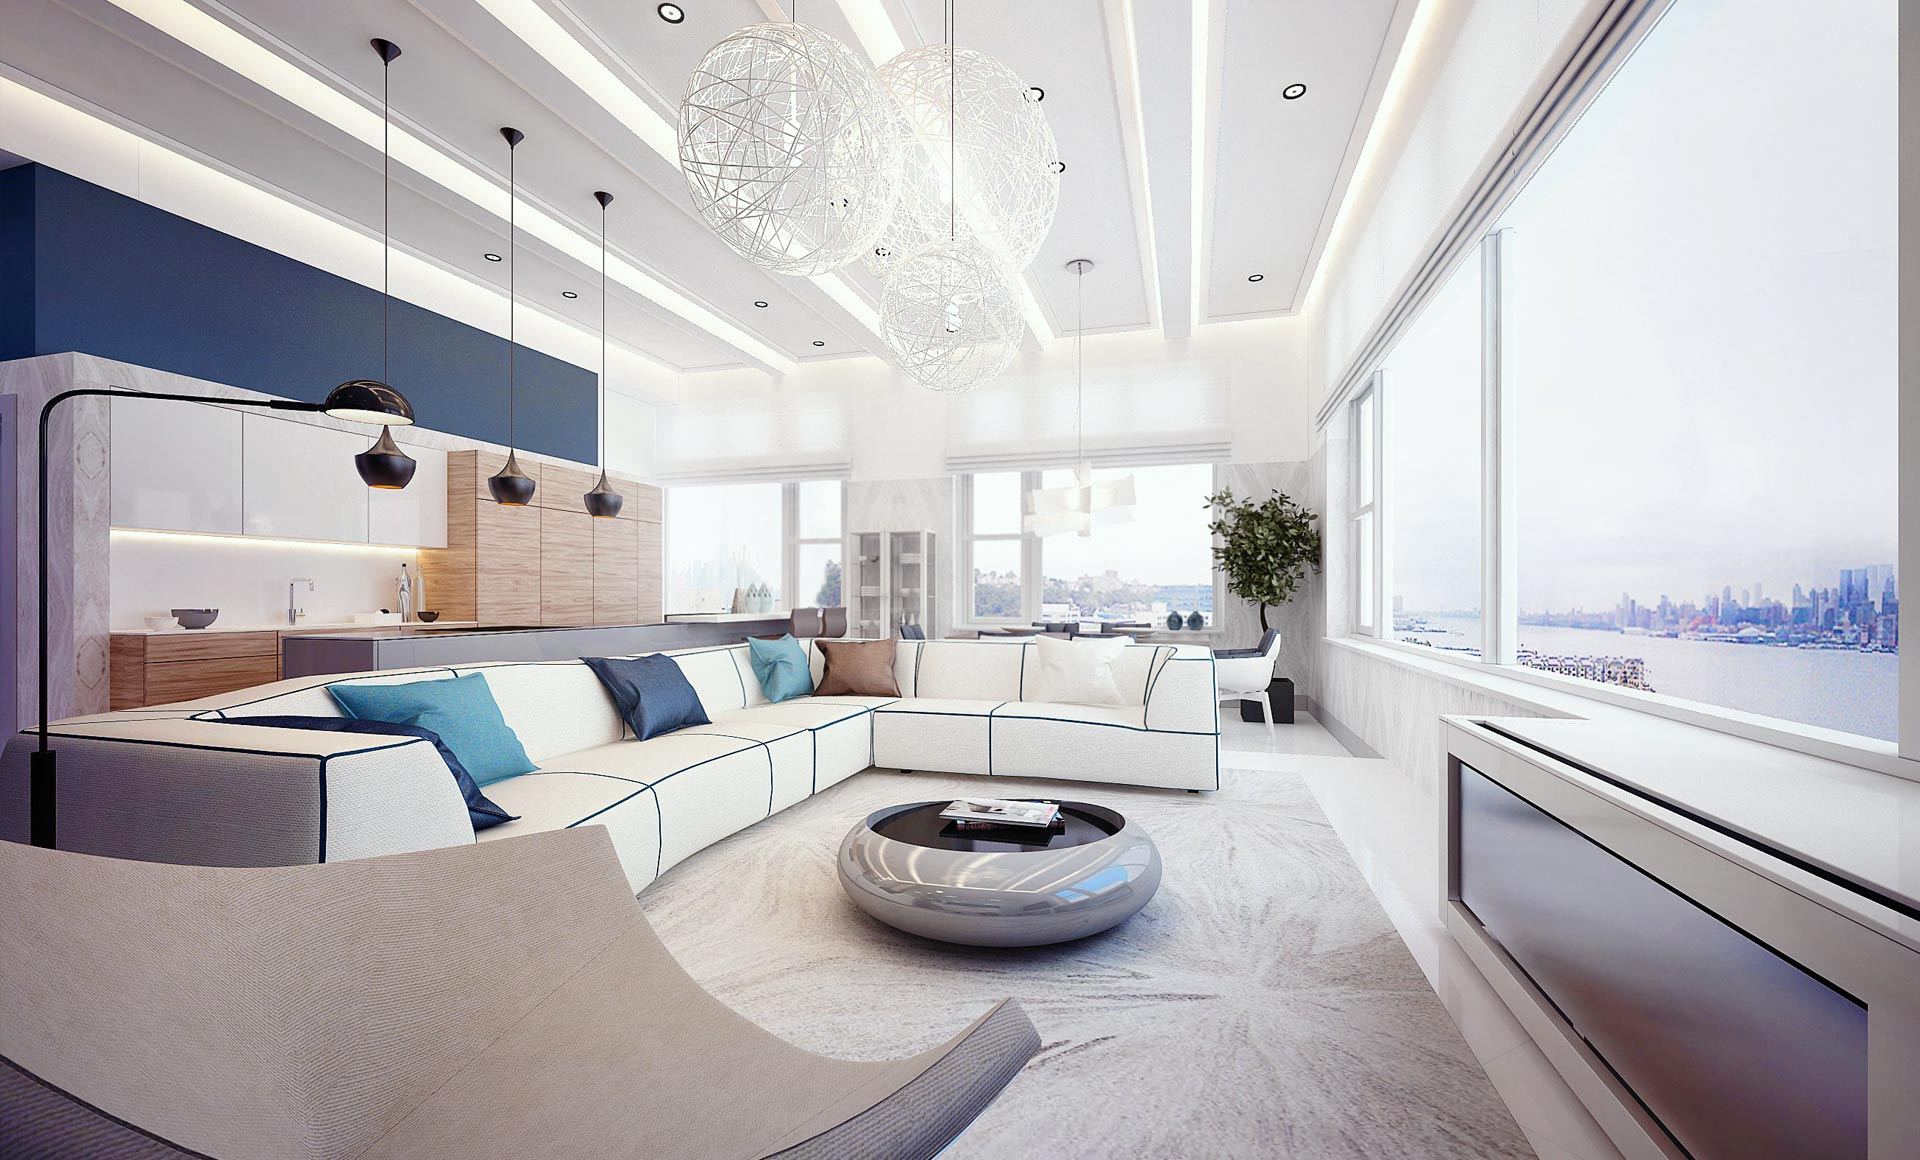 Interior Design Future design as it should be. interior & architectural. vanguard development